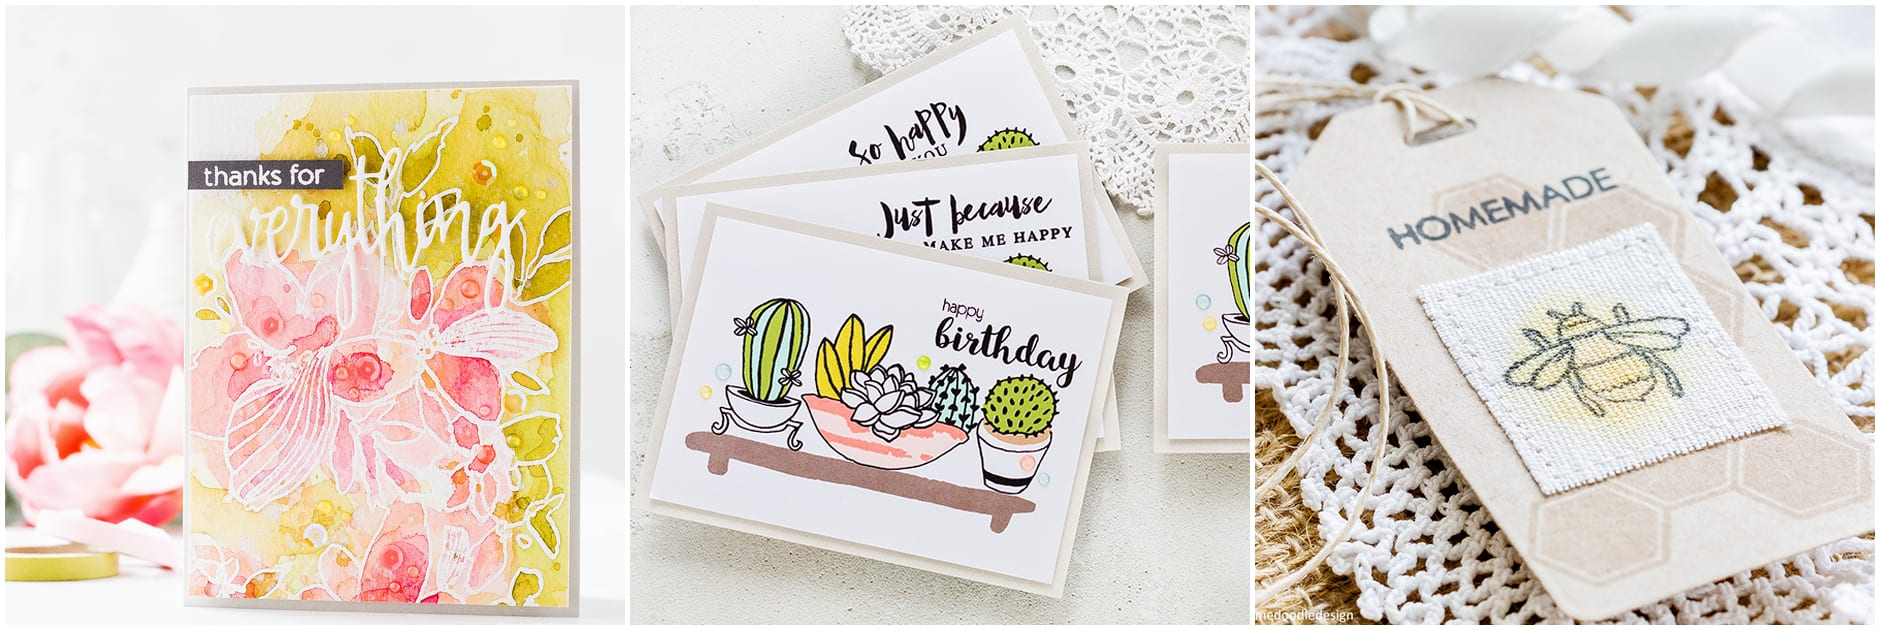 Reviewing the new July 2017 release from Altenew. Handmade cards by Debby Hughes. Find out more: https://limedoodledesign.com/2017/07/altenew-july-2017-release-blog-hop-giveaway/